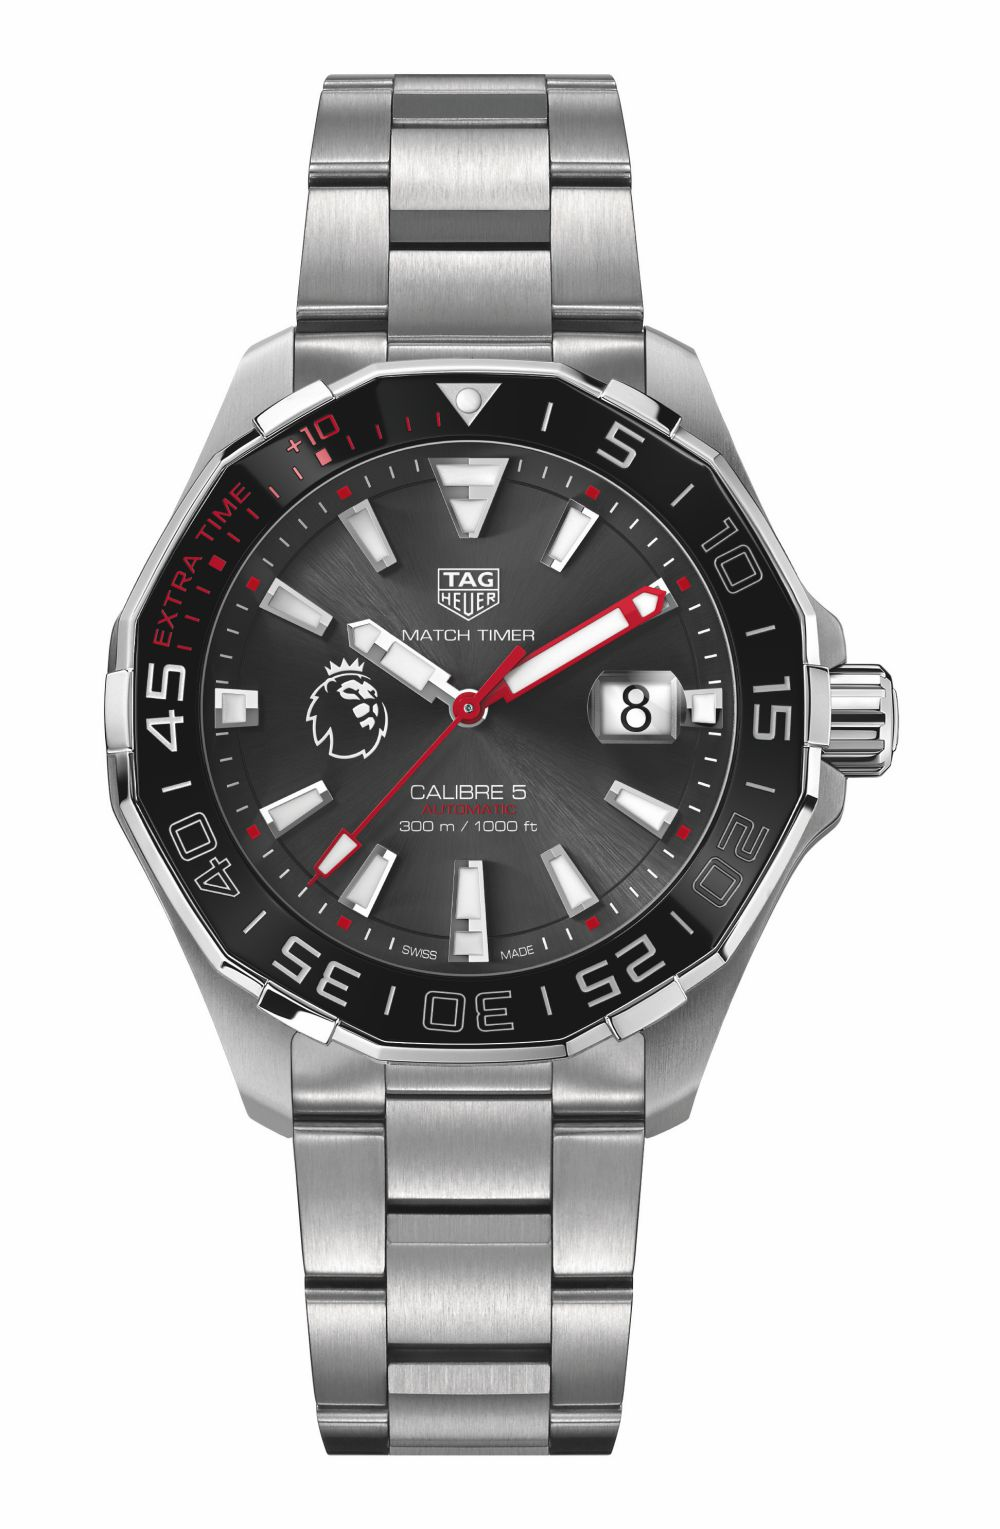 Tag-Heuer-Aquaracer-Premier-League-Special-Edition-4.jpg